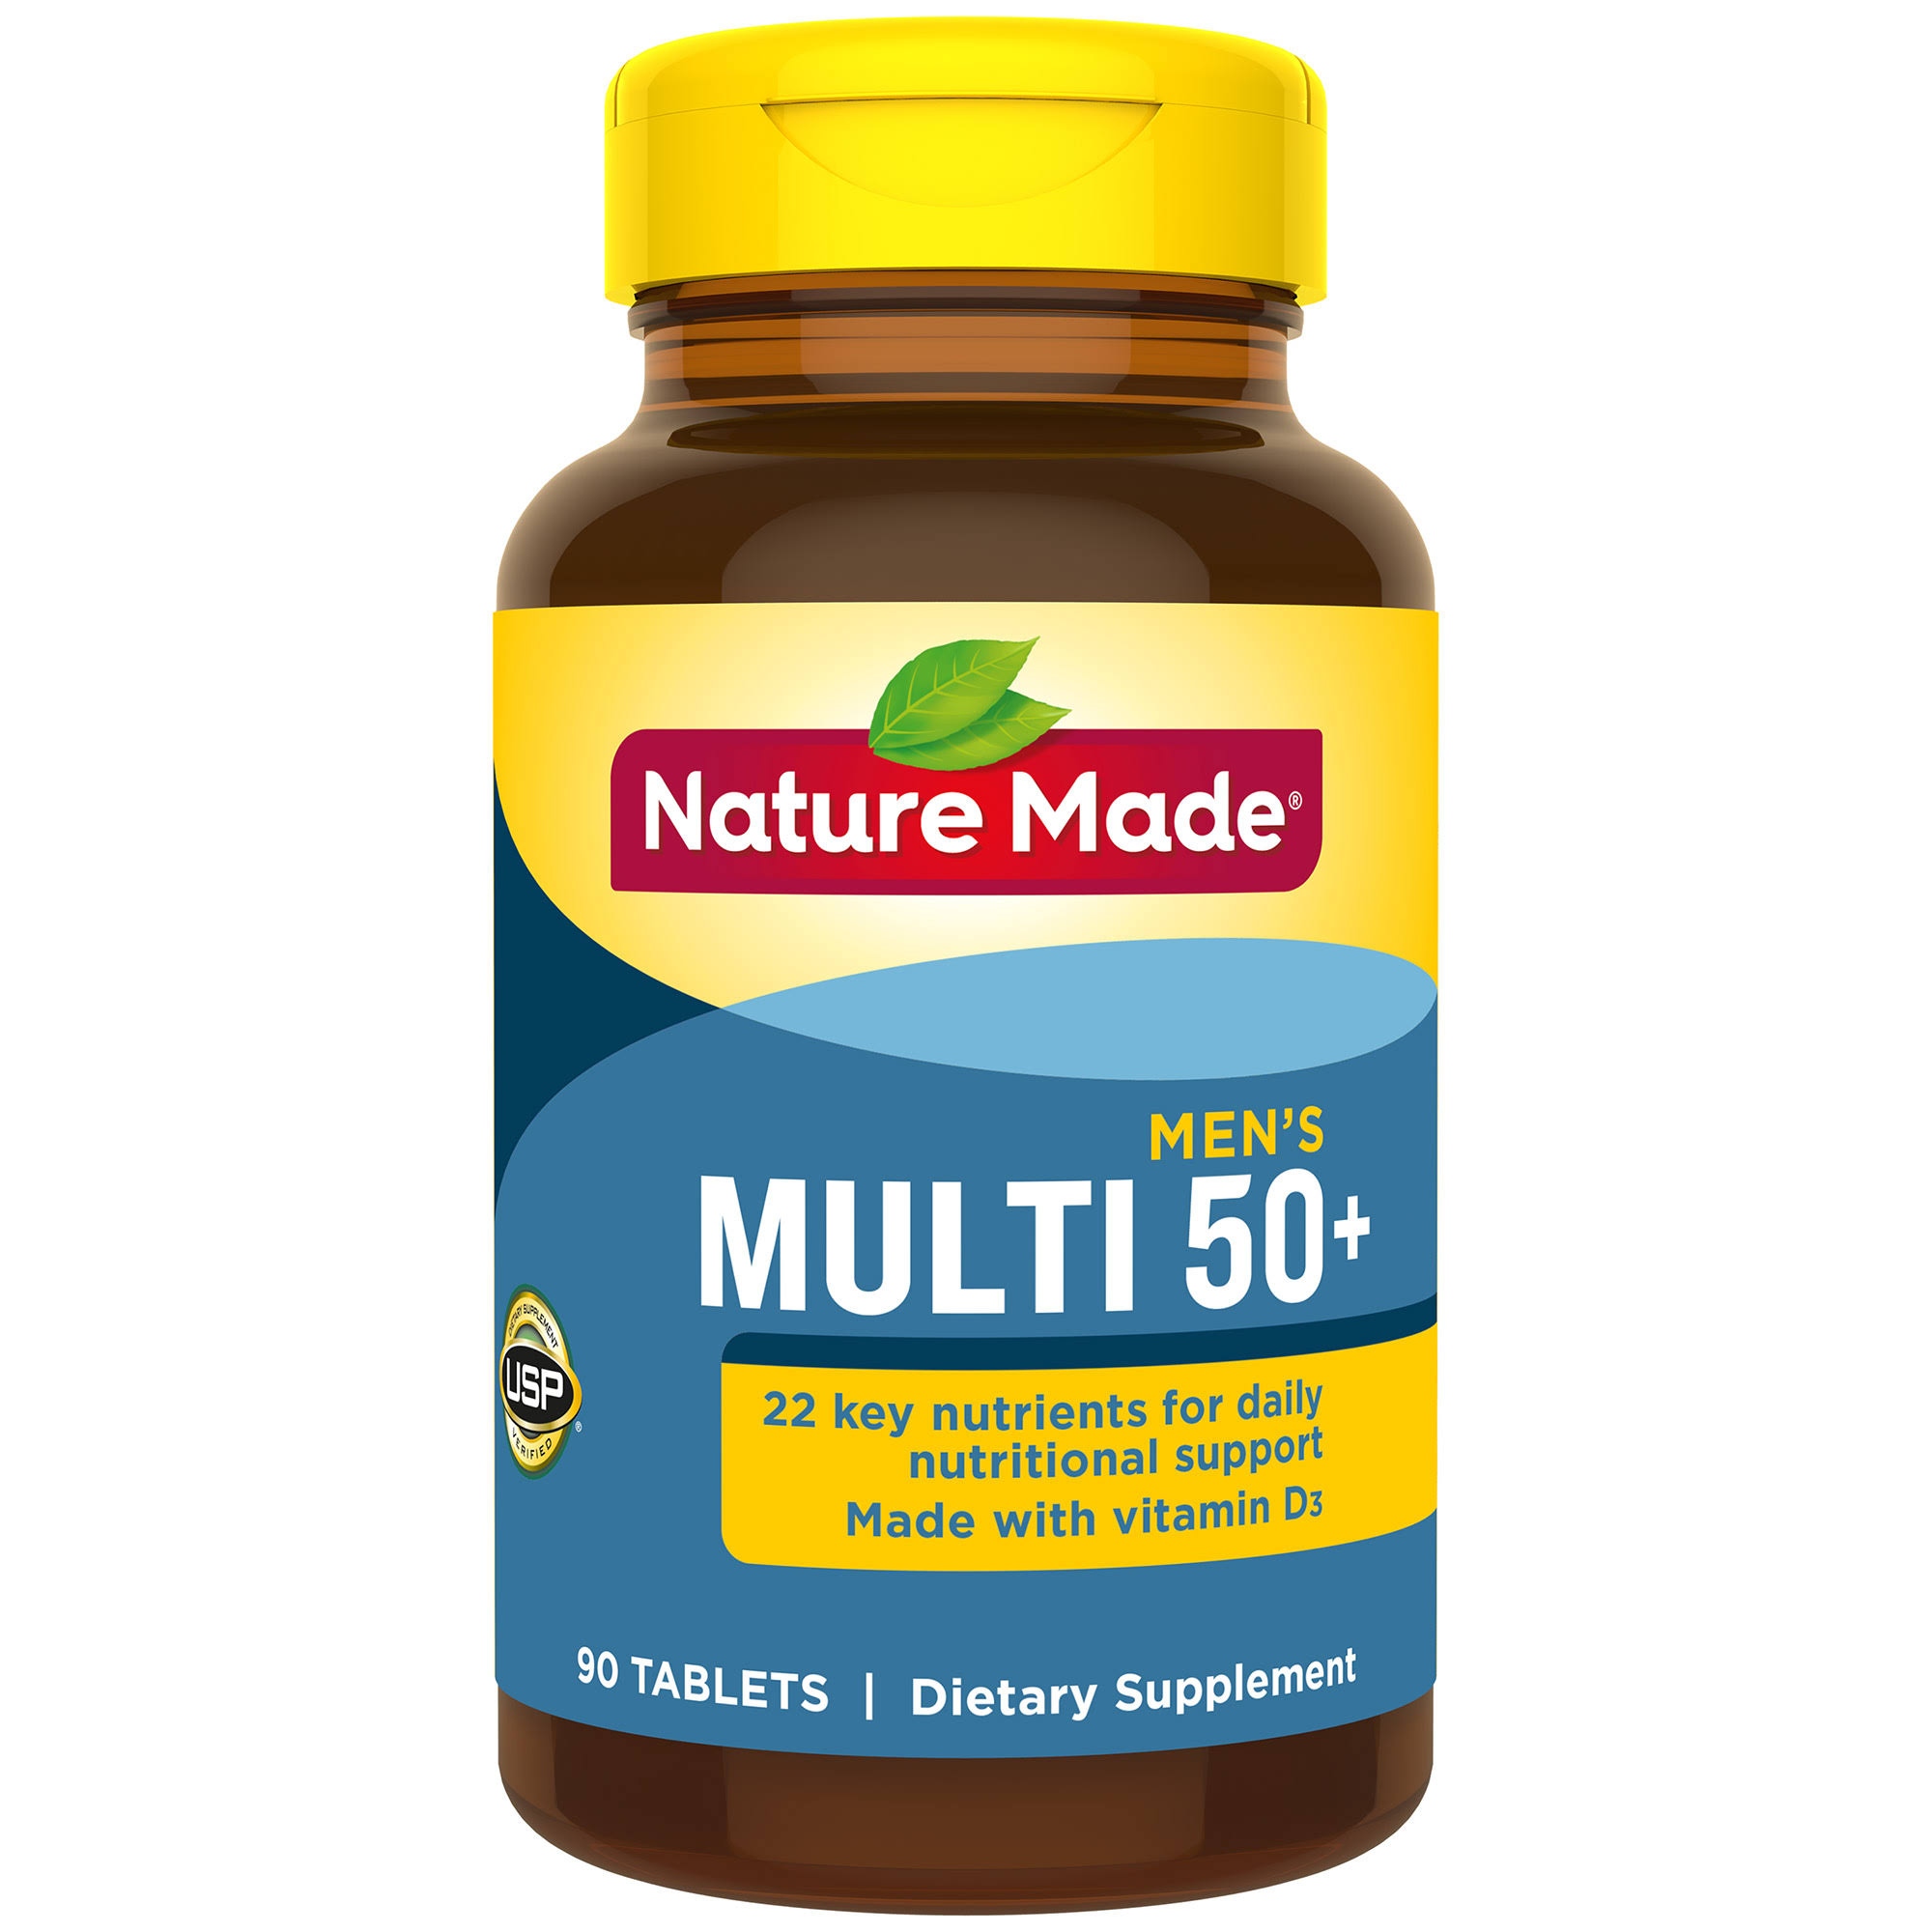 Nature Made Multi For Him 50+ Vitamin And Mineral Supplement - 90ct